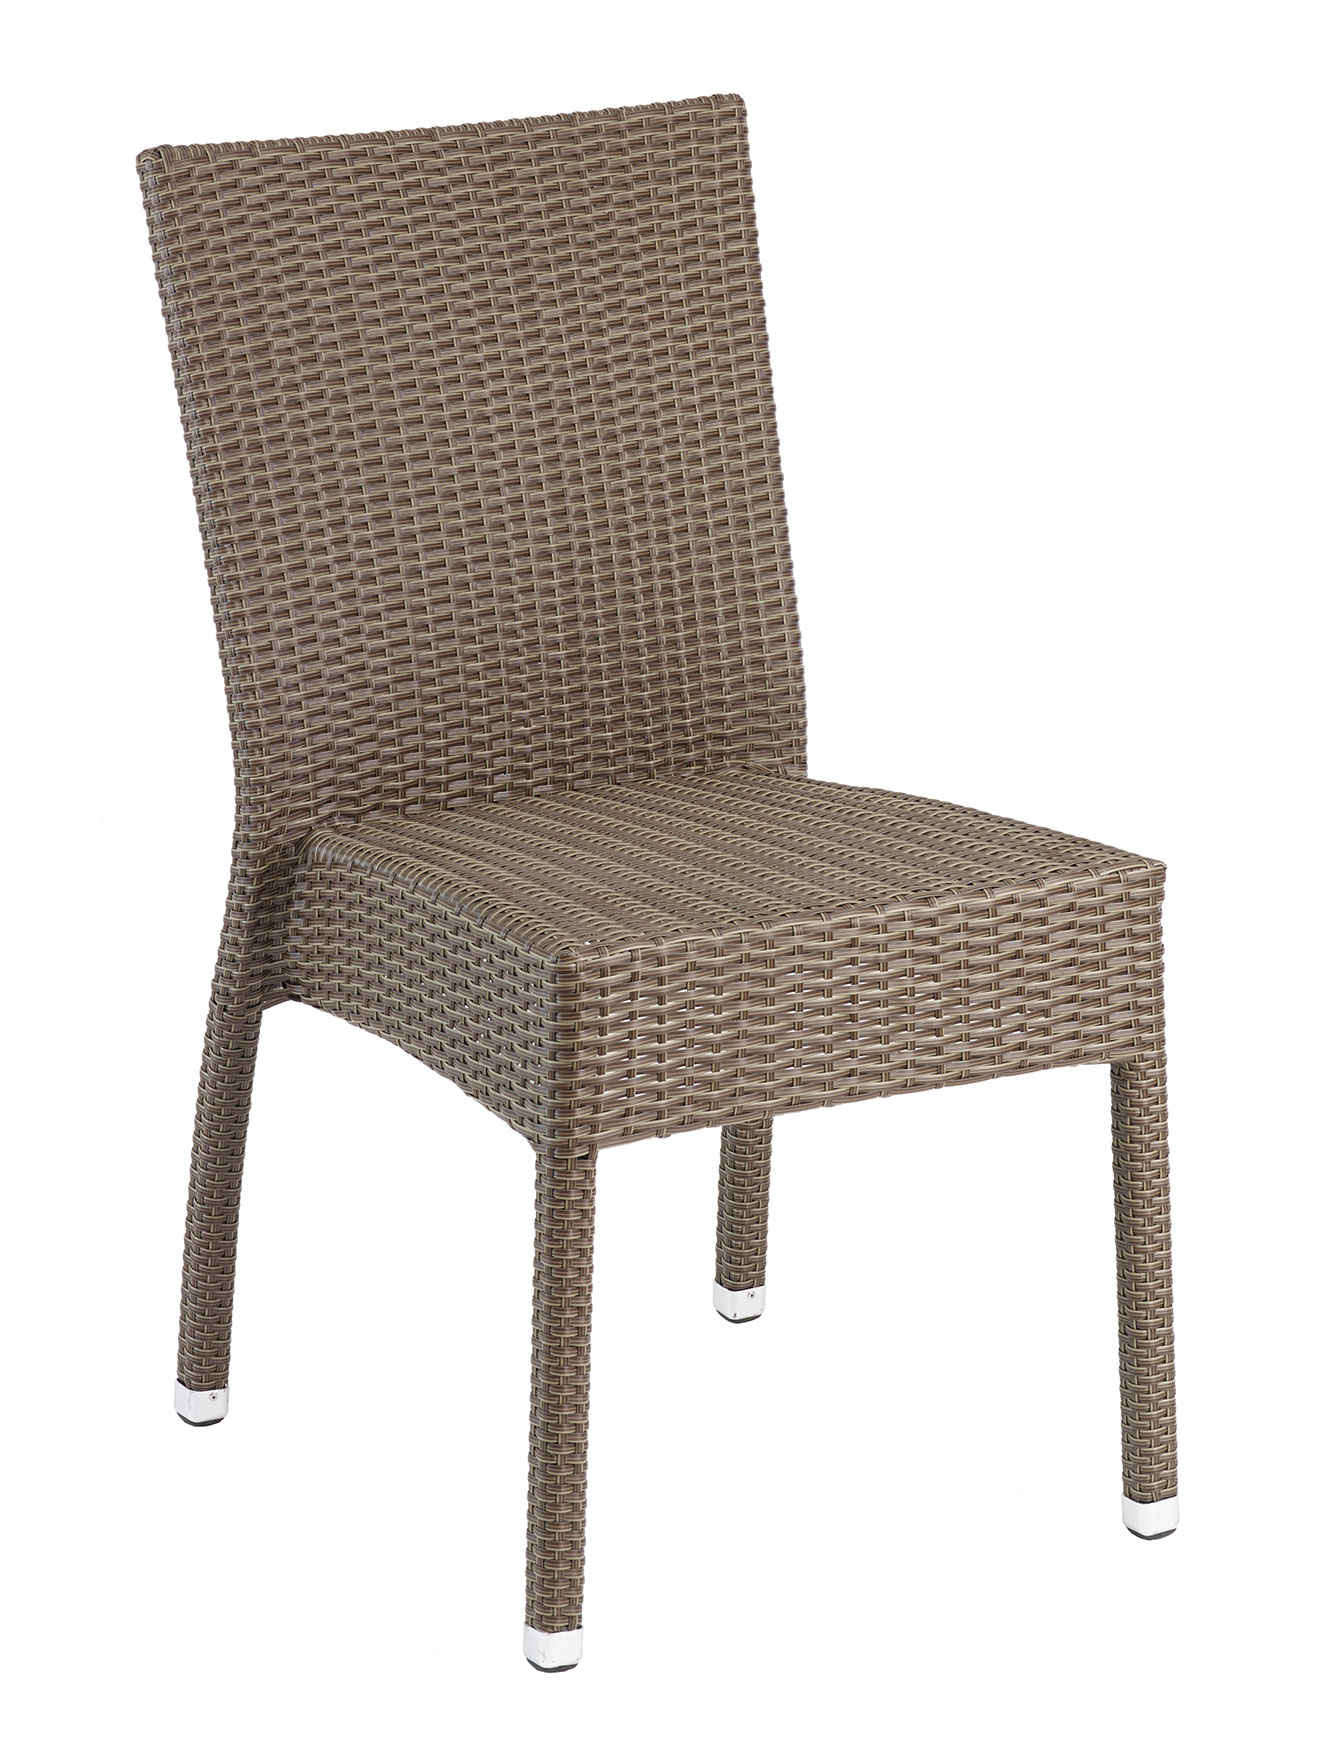 key west chairs booster seat kitchen chair wicker side sw02c commercial restaurant furniture